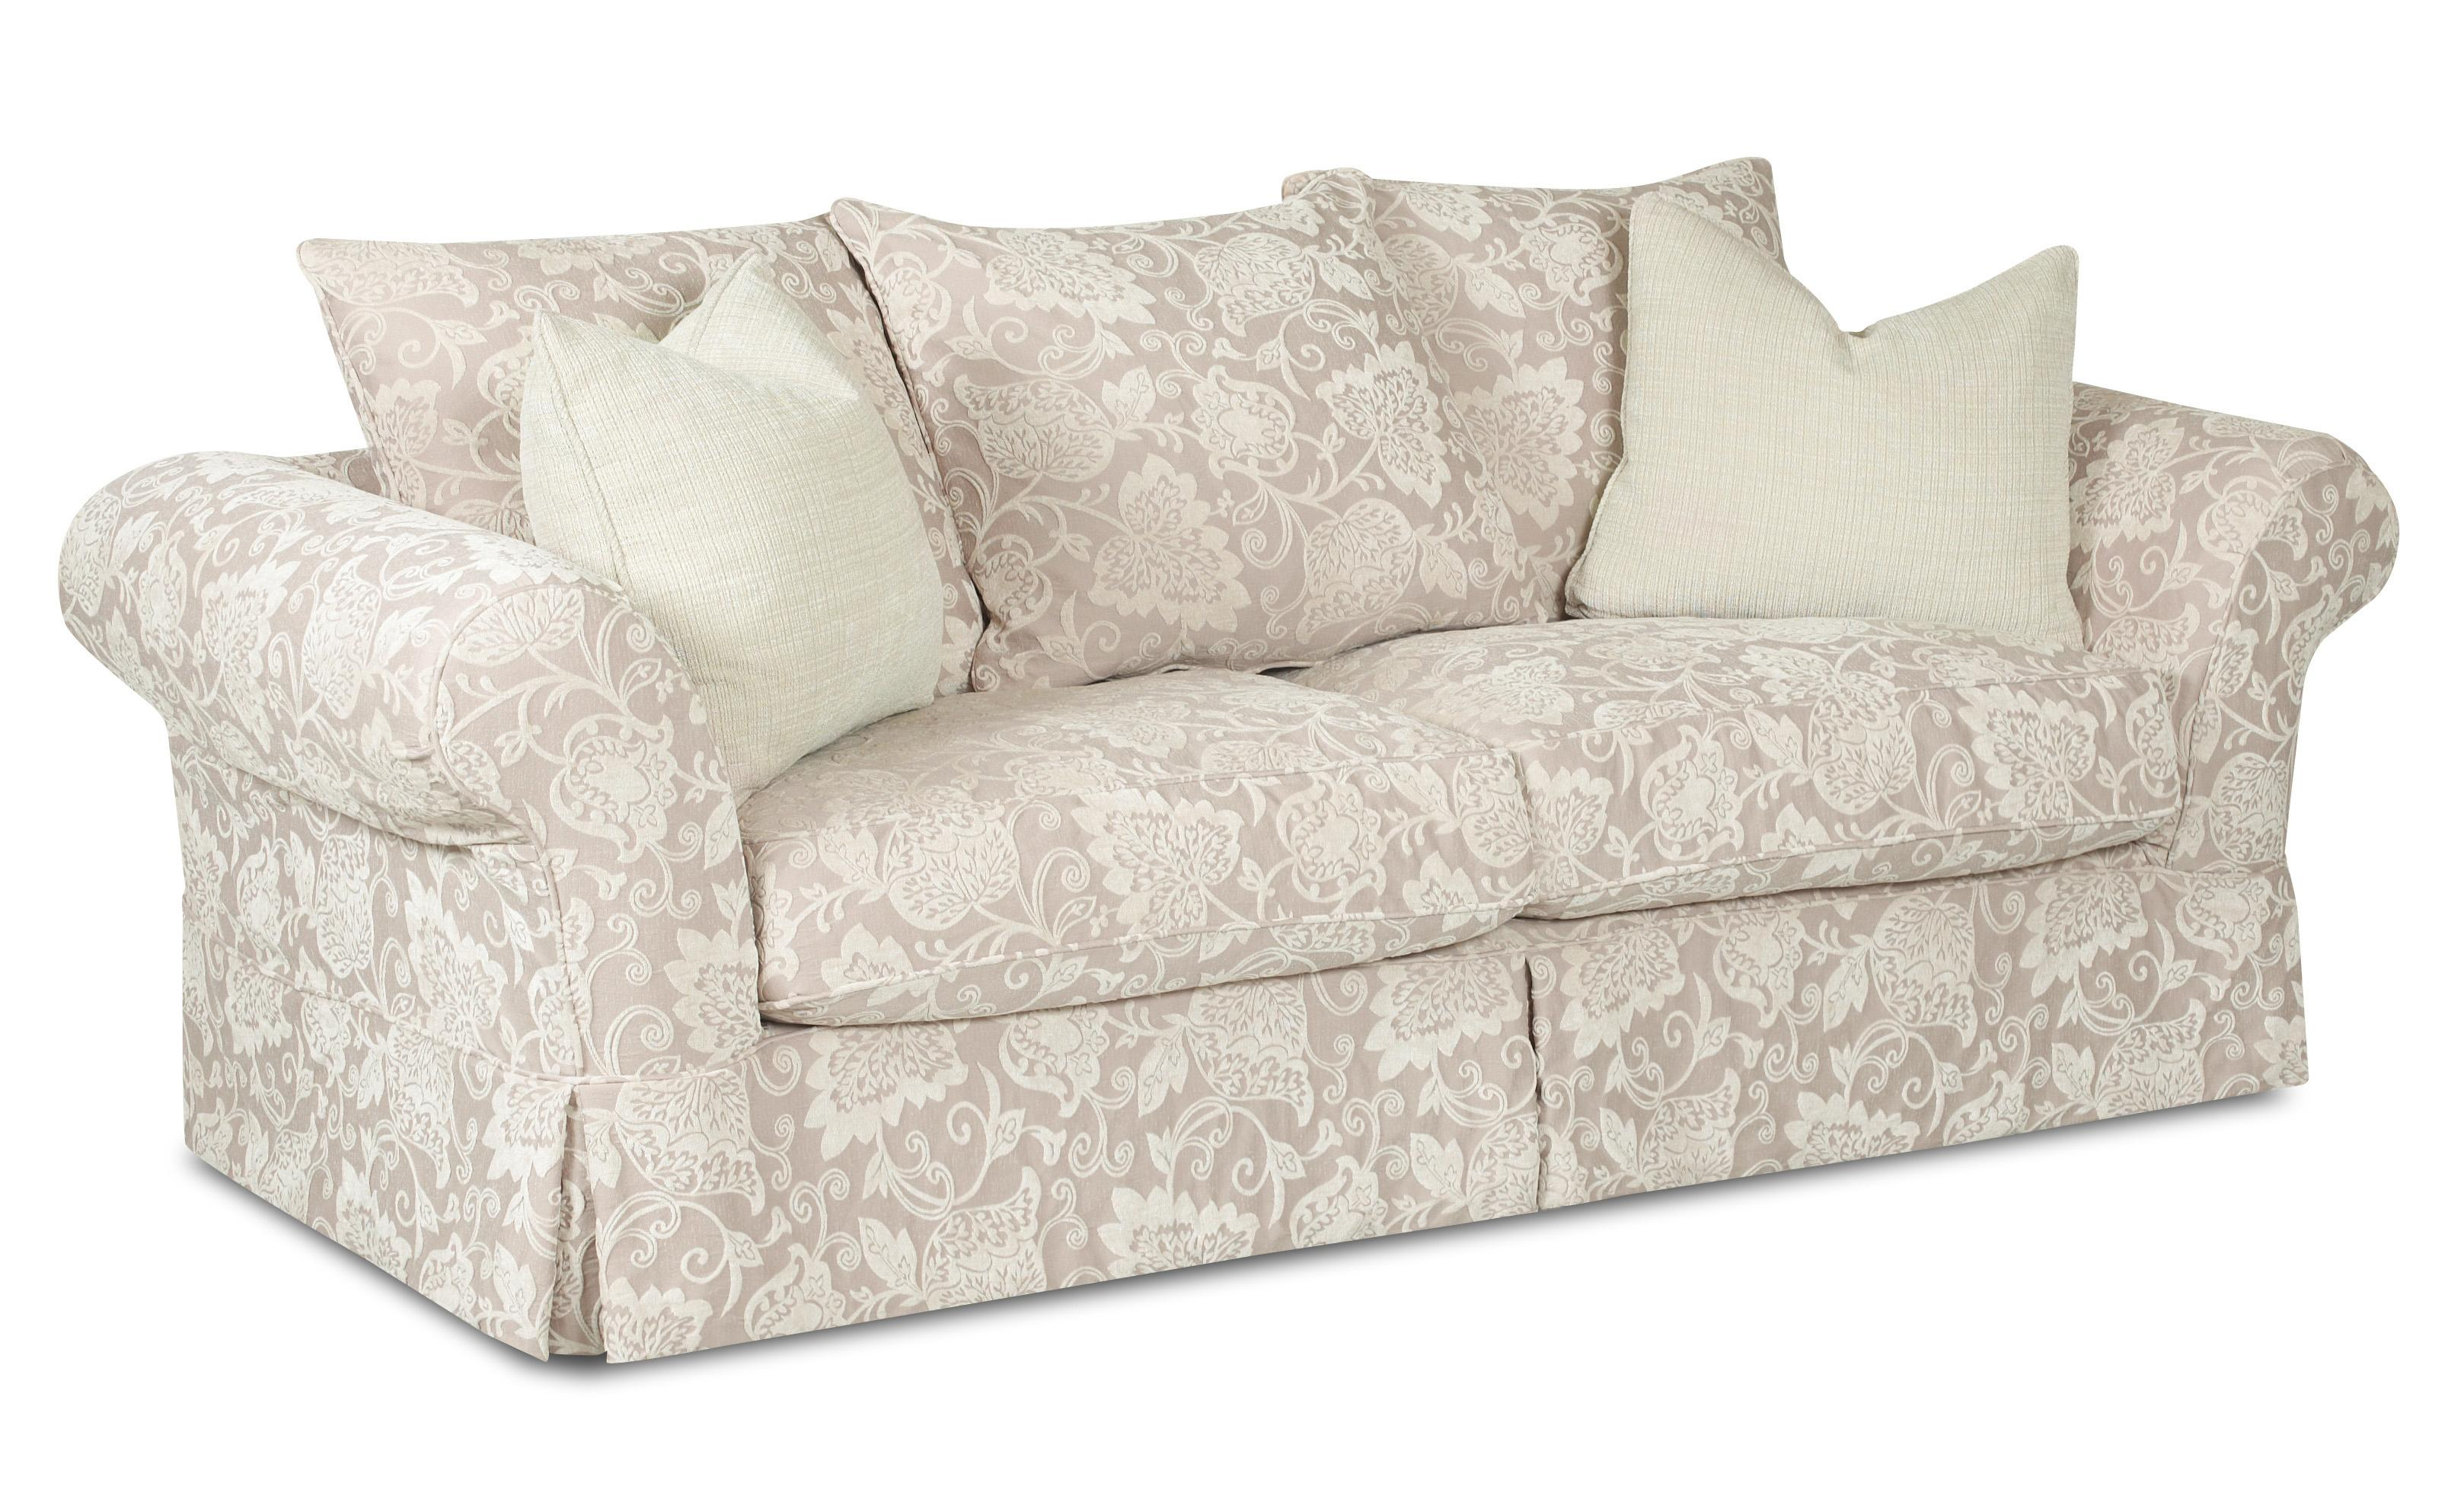 Klaussner Charleston Sofa with Scatterback Pillows - Item Number: D80100S